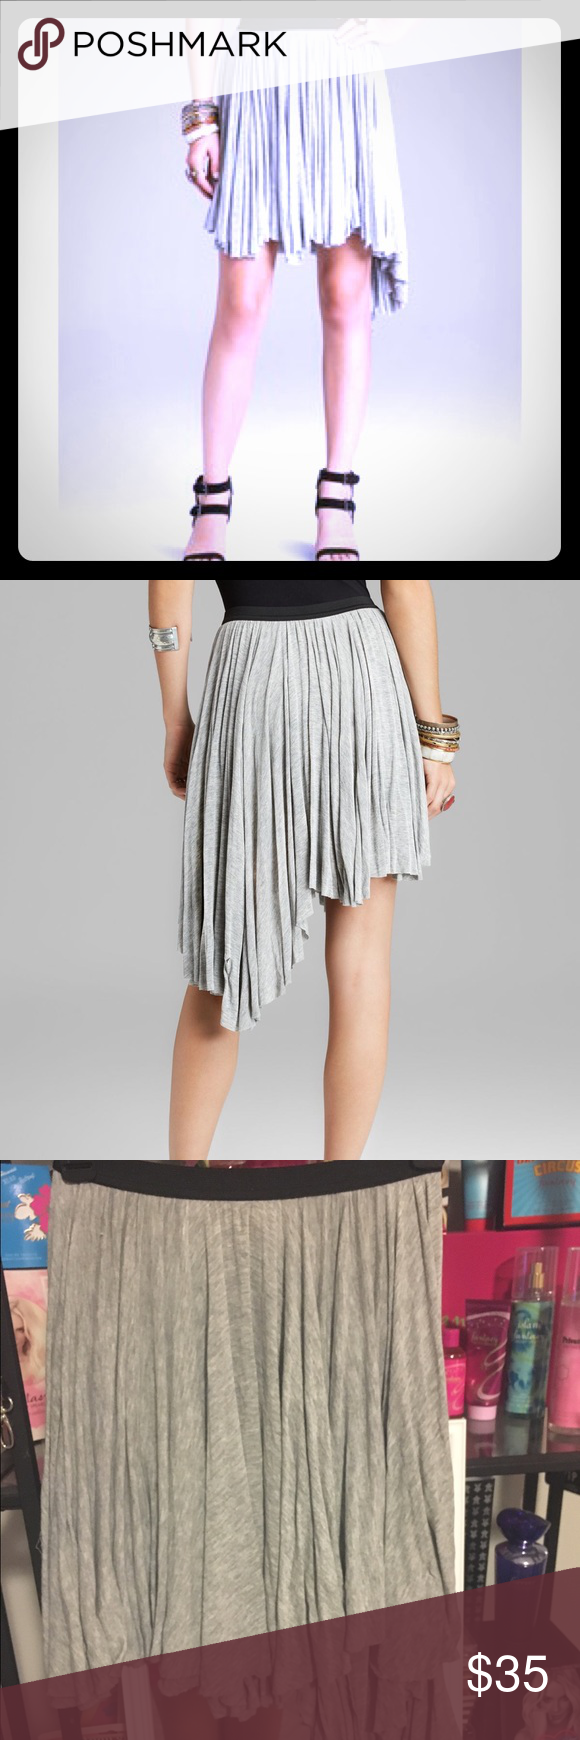 Free People Last Chance Skirt- Heather Gray Asymmetrical skirt by FP! Grey color, super pretty for work or play. Built in slip, so it is not sheer :) perfect condition. Can provide measurements upon request! Free People Skirts Mini